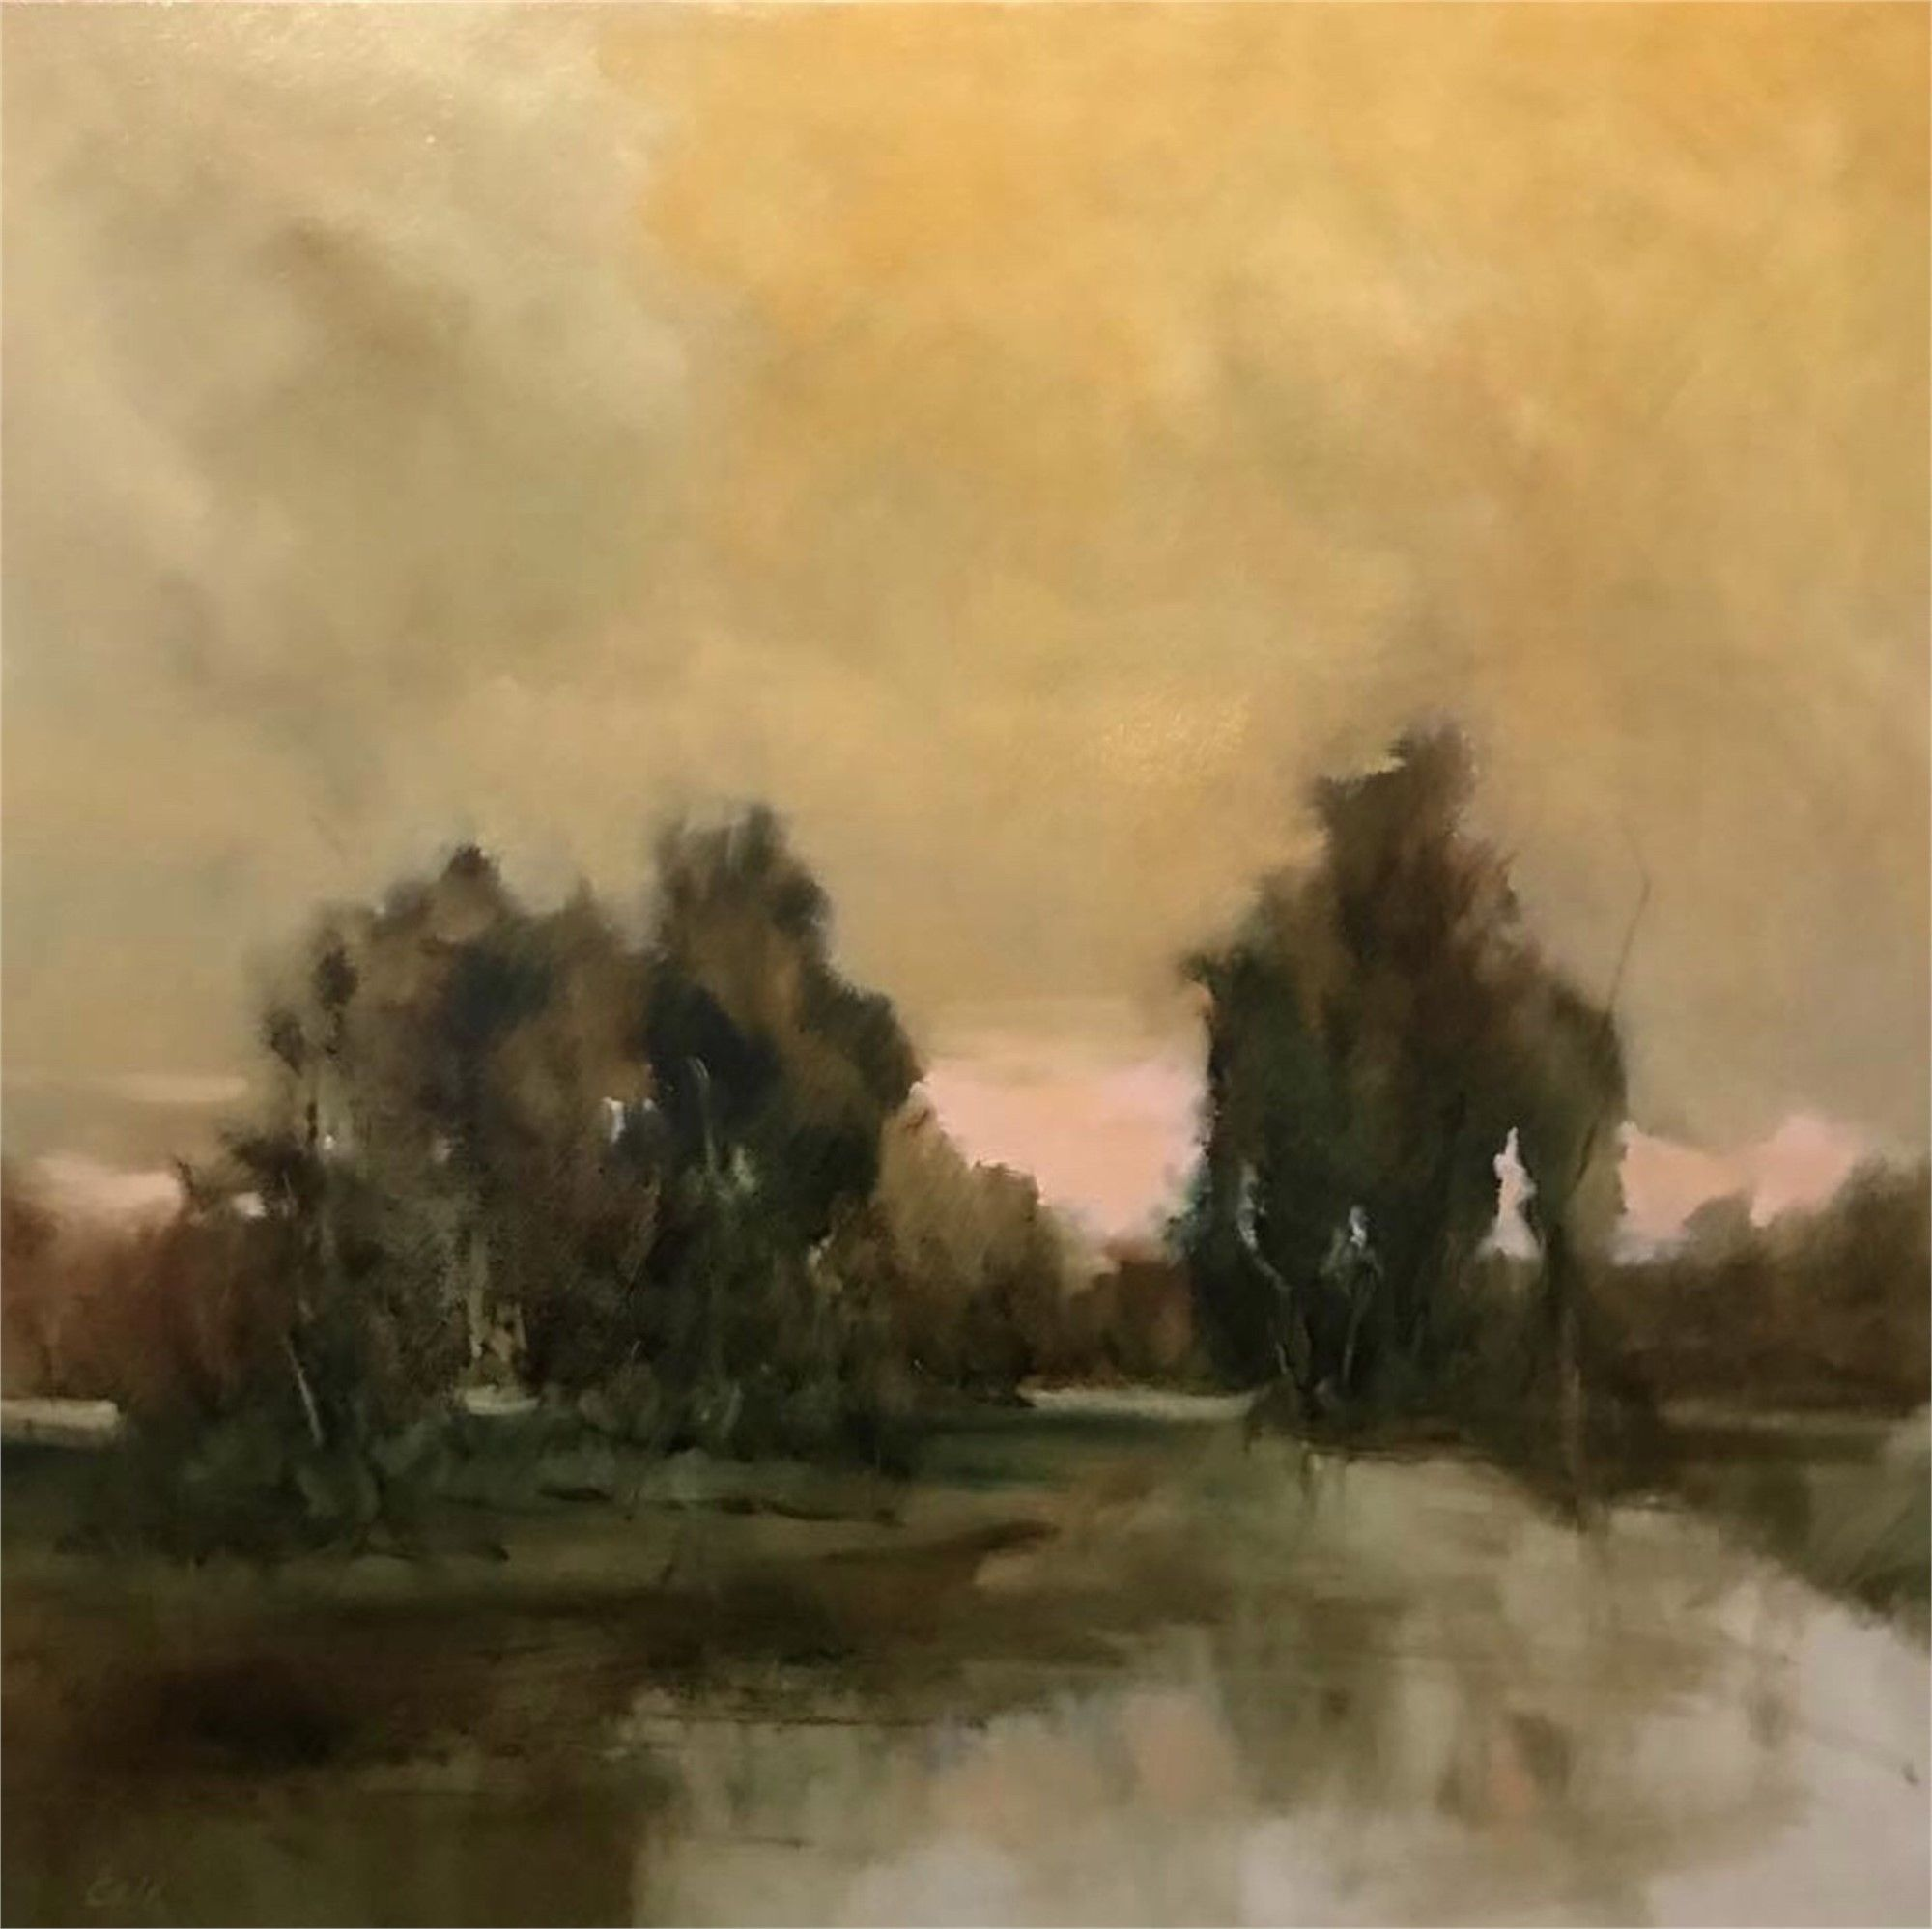 Placid Waters Original Oil Painting By James Calk Lowcountry Landscape Oil Painting Abstract Original Oil Painting Fine Art